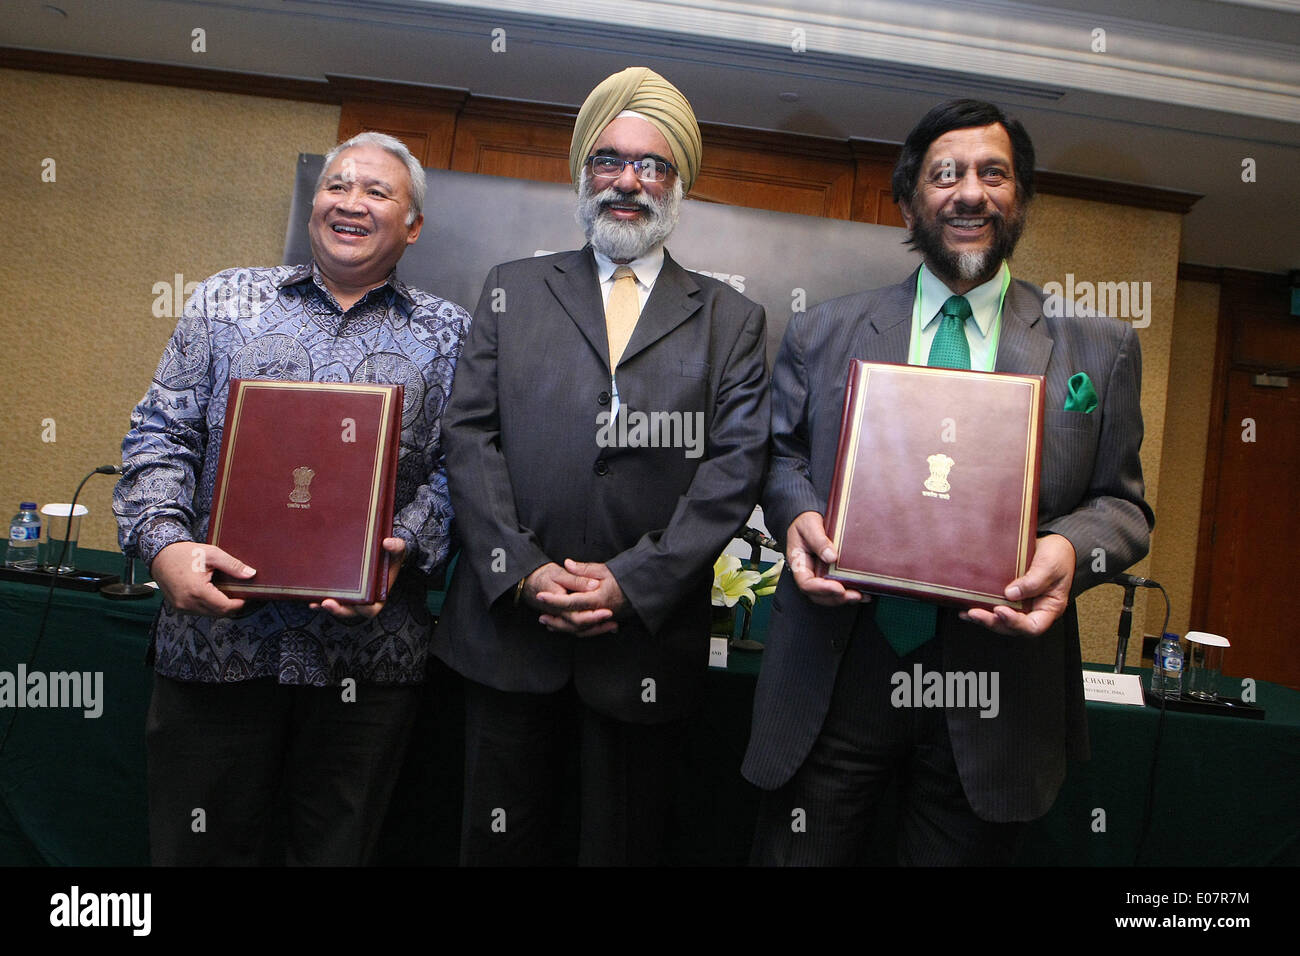 May 5, 2014 - Central Jakarta, Jakarta, Indonesia - Chancellor of TERI University, Dr. R.K. PACHAURI (right), The Stock Photo